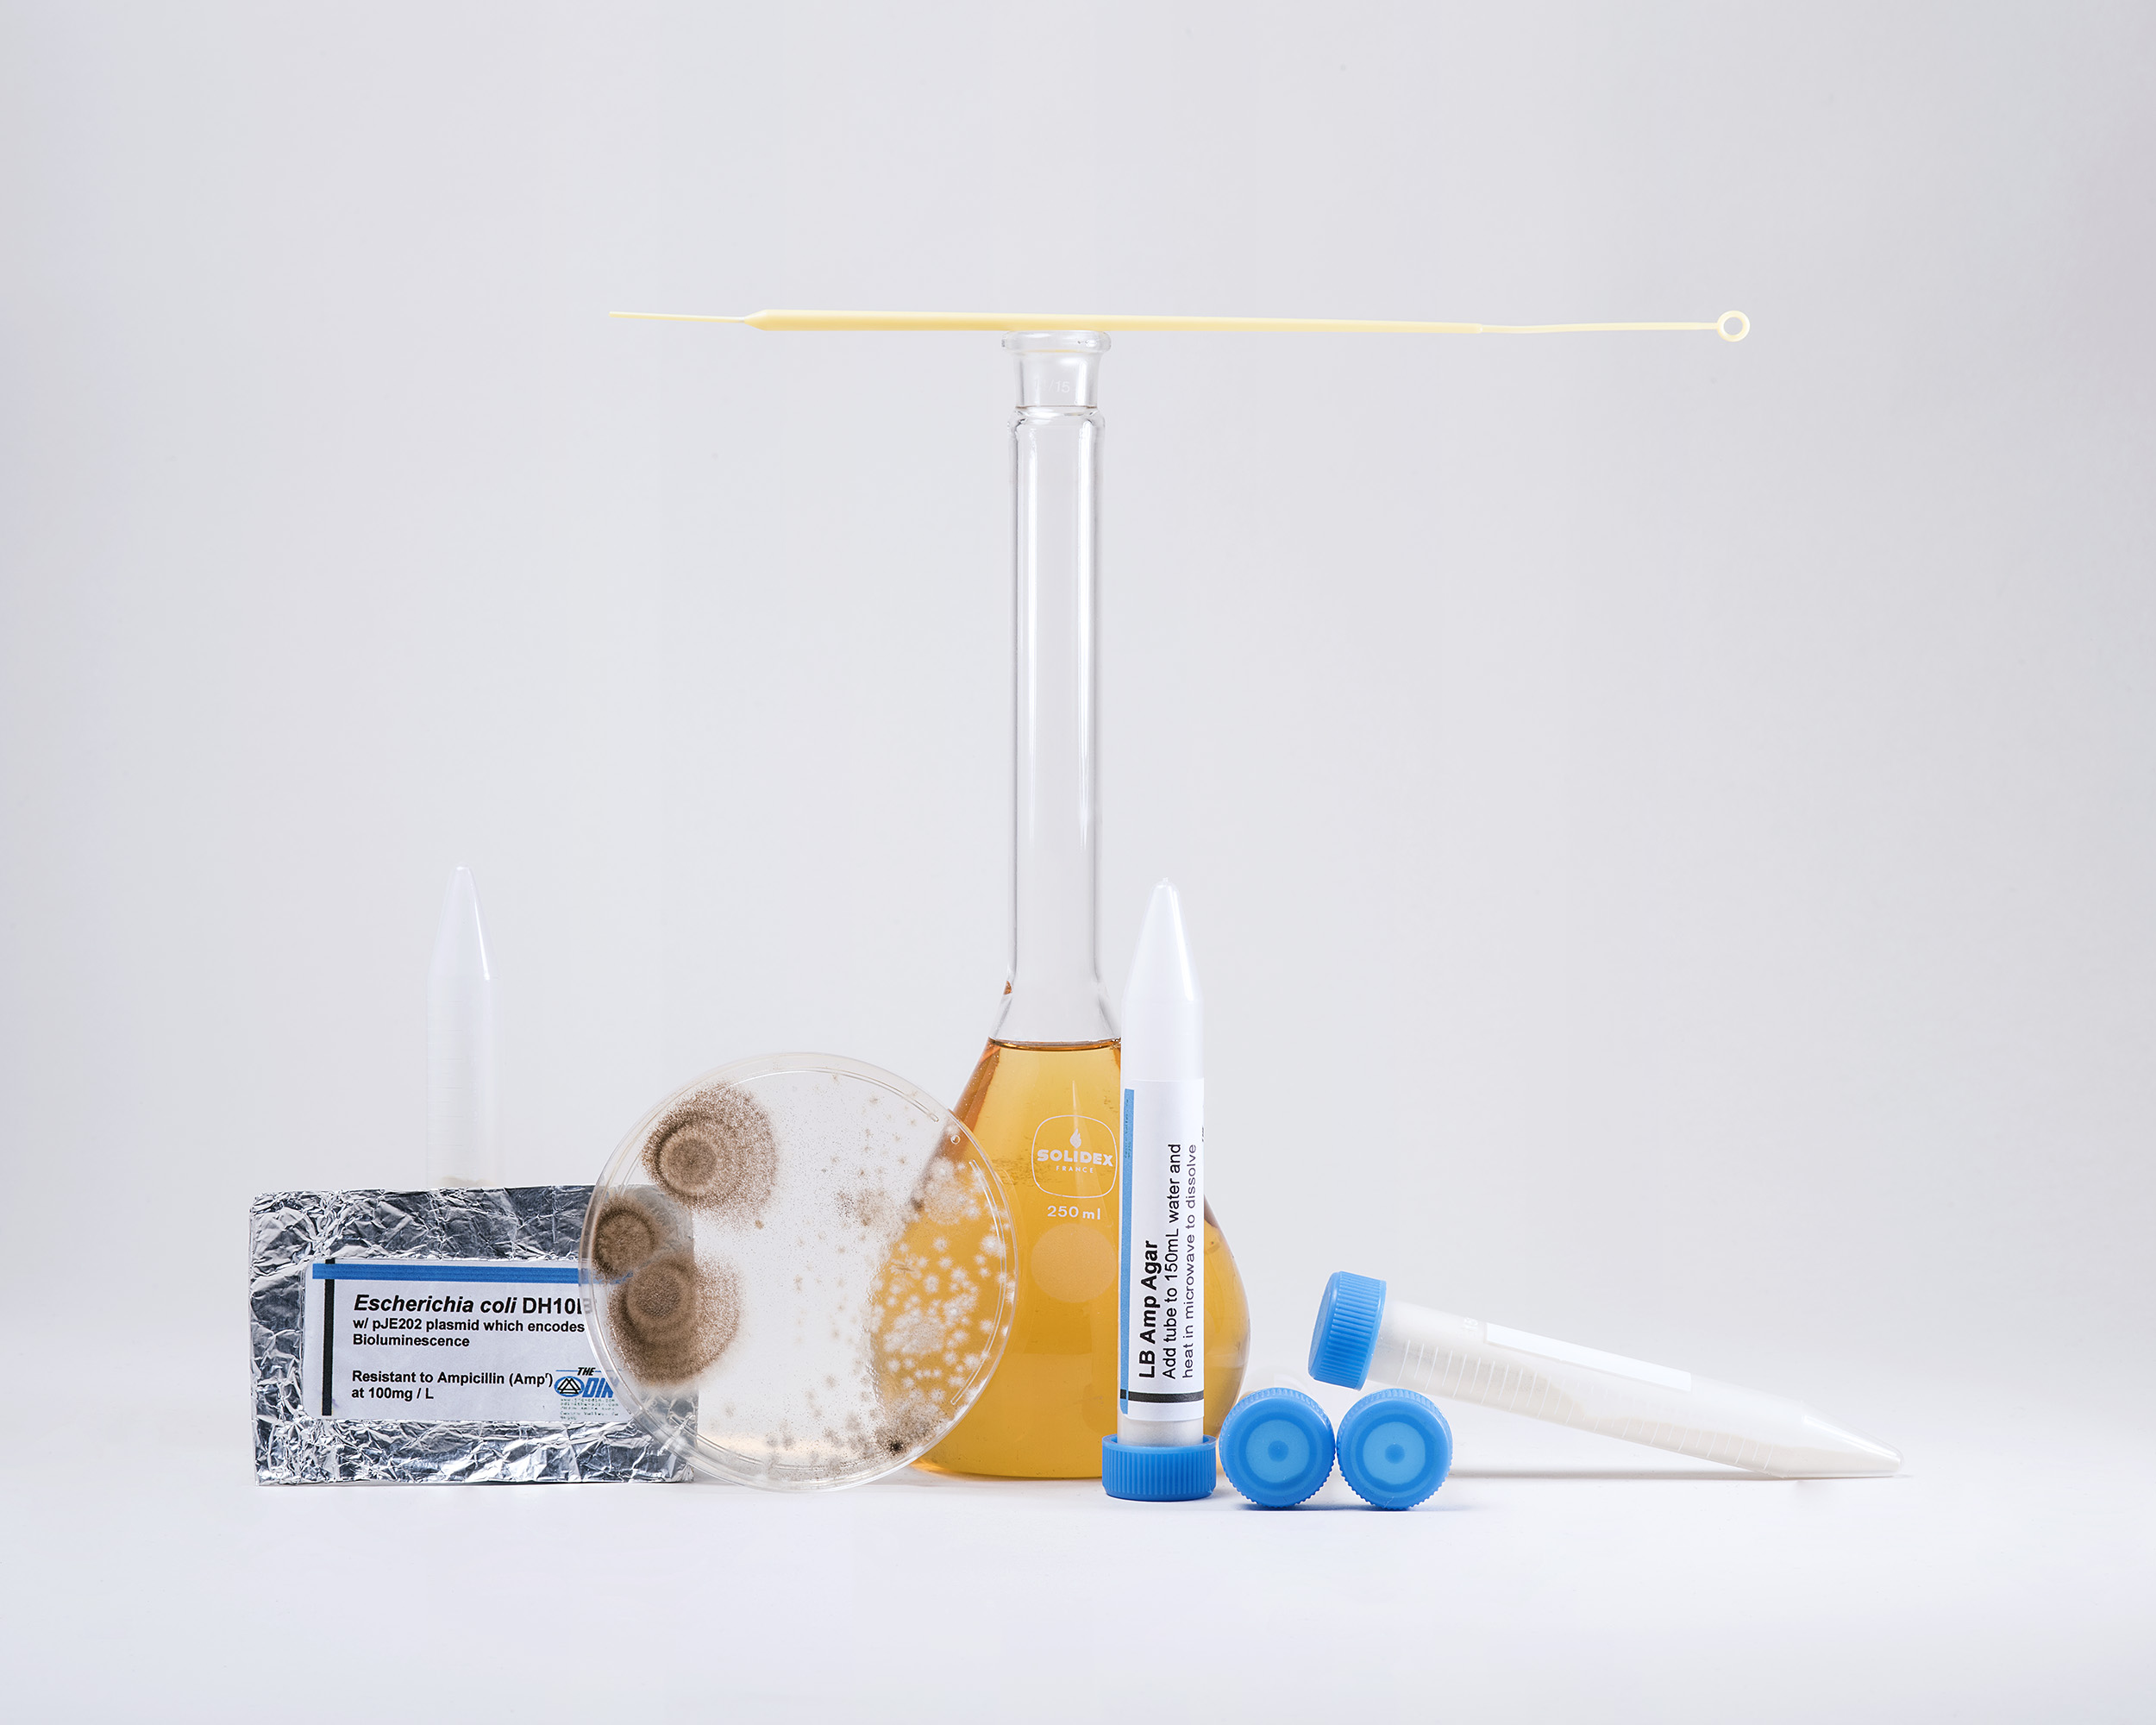 A host of home laboratory kits are available for purchase online. They can include everything a DIY biologist needs, from instruments to plasmids and the substances to cultivate them in Petri dishes, from genetically modified cells and bacteria to bioluminescent cuttlefish or fireflies.